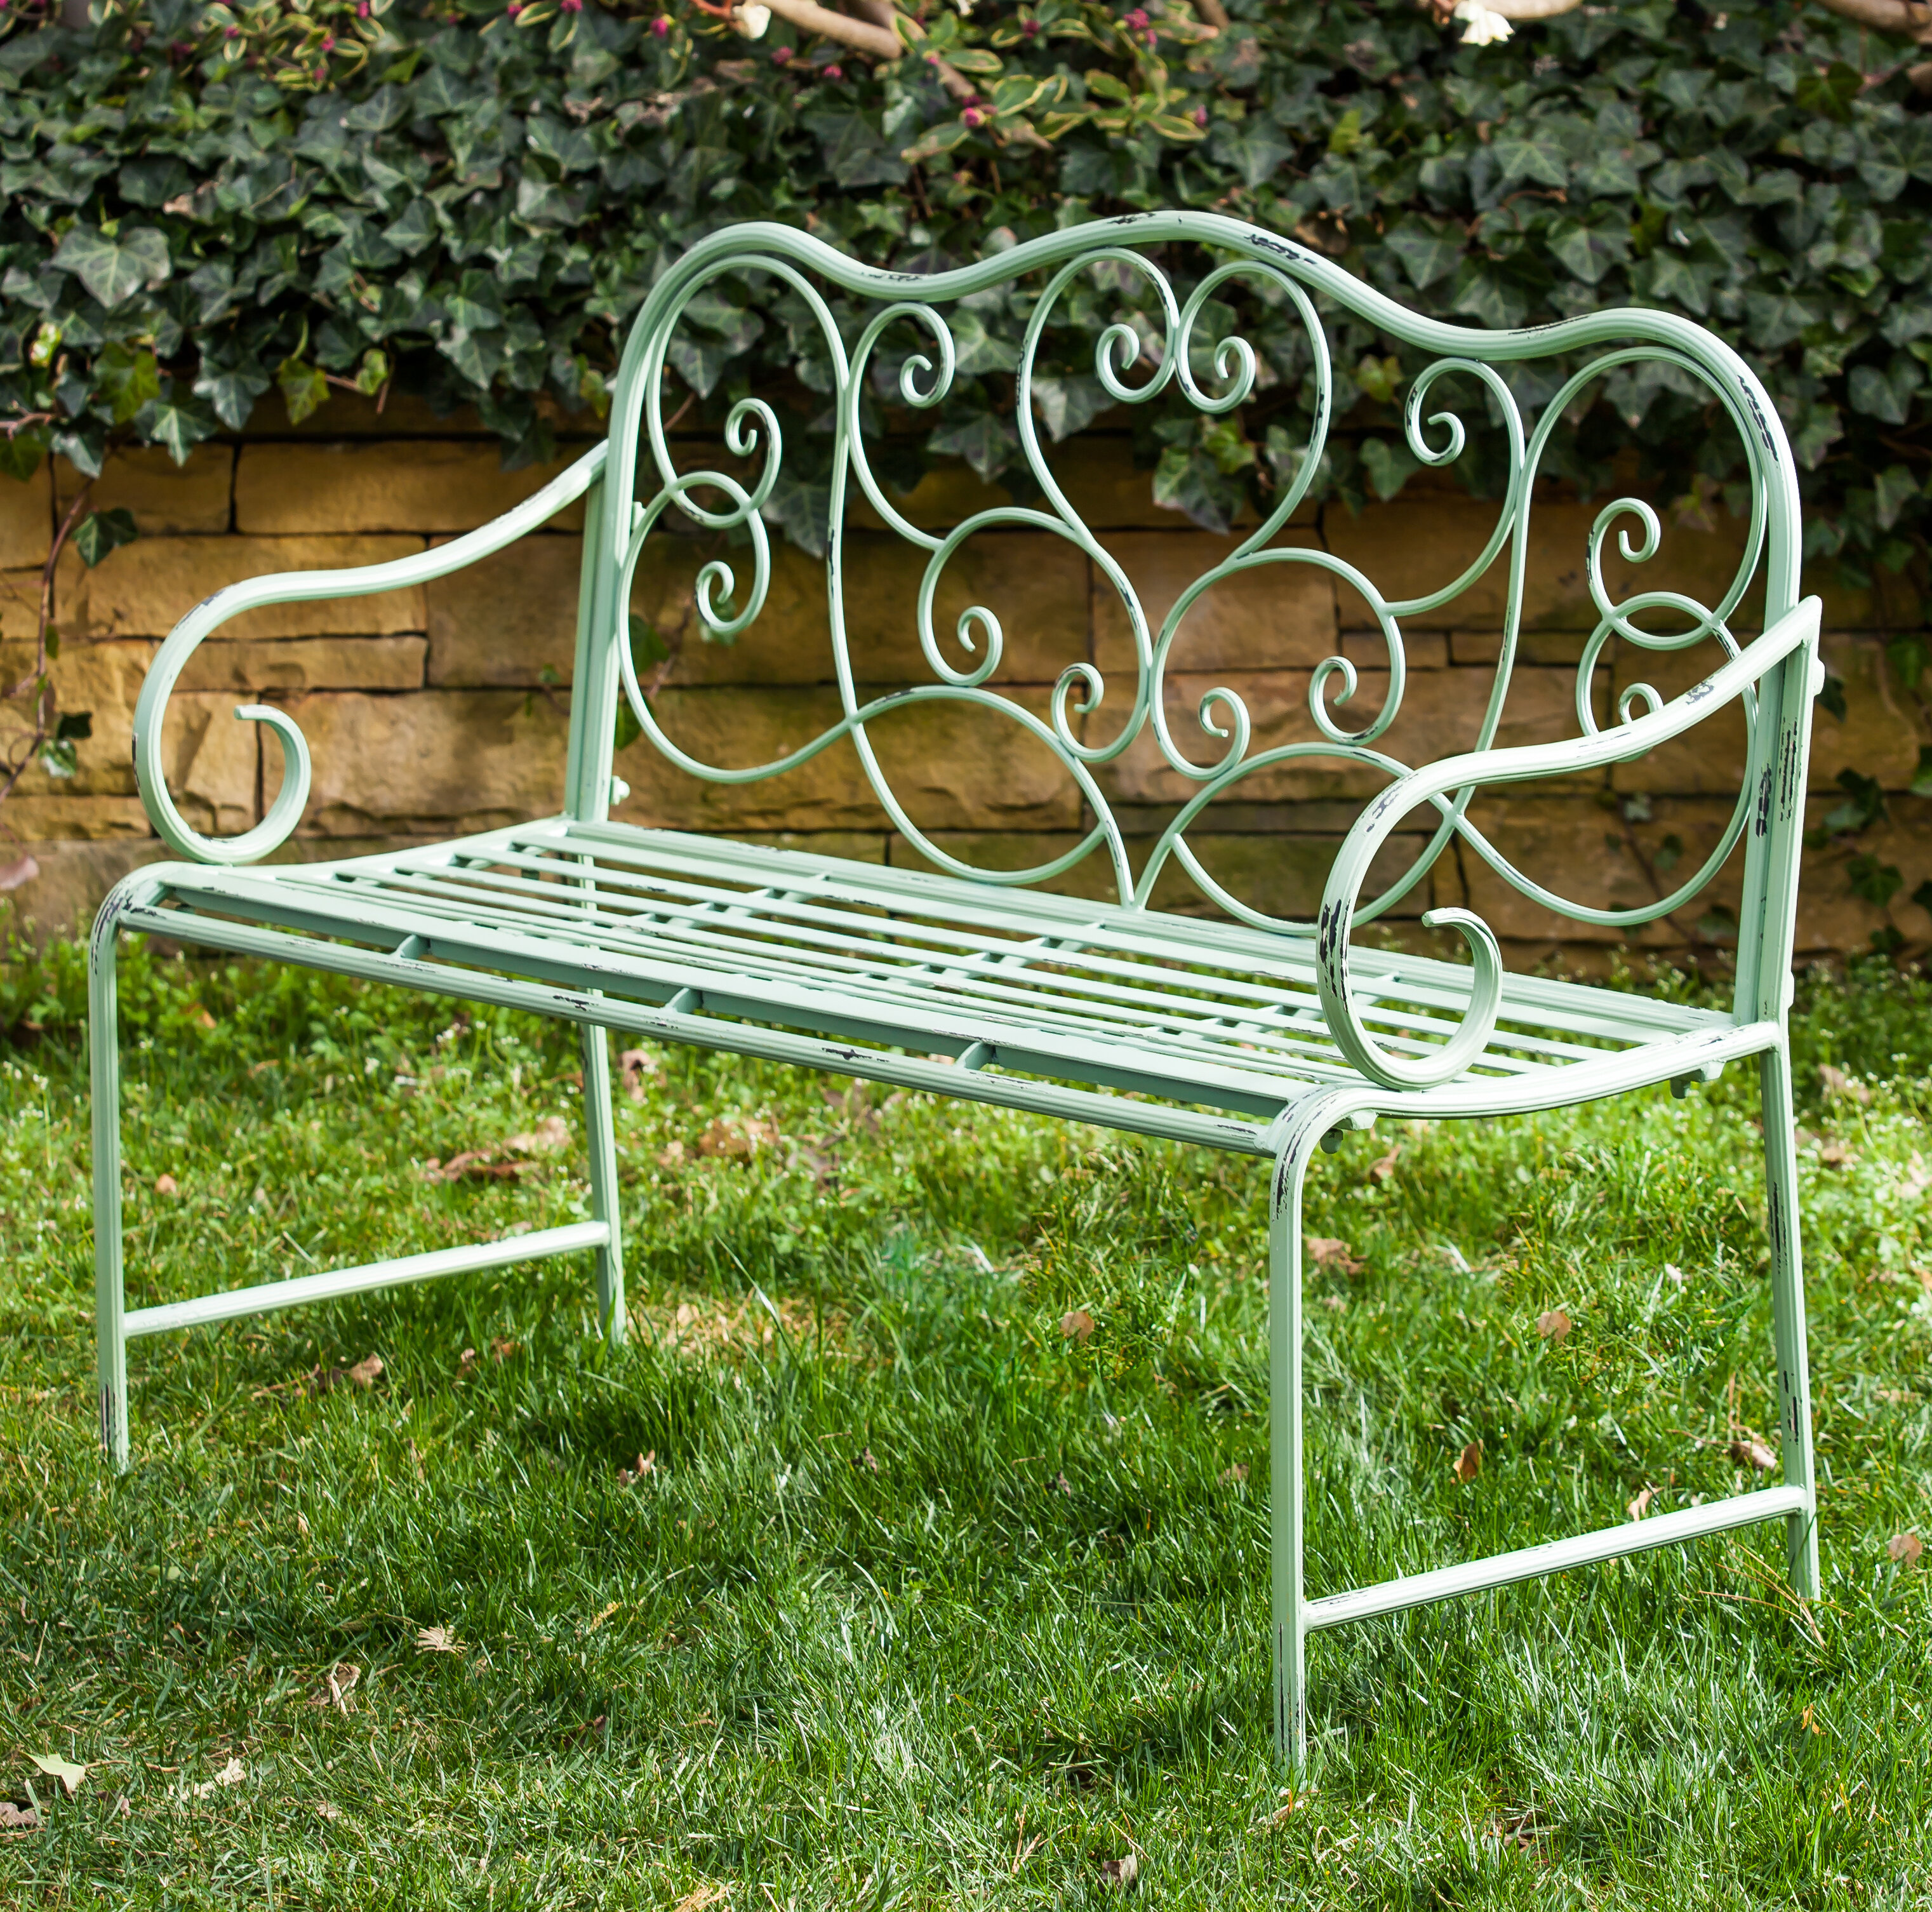 wrought seats and table for patio iron cast black wood seating outdoor bench small park garden chairs cheap sale steel metal benches